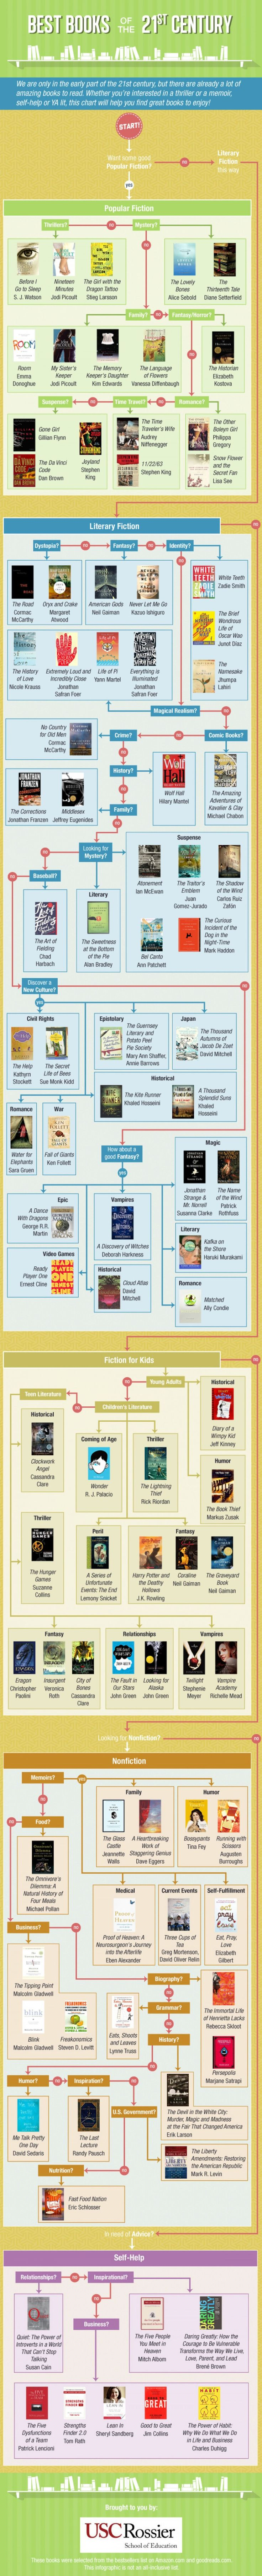 """Best Books of the 21st Century Infographic <-- My biggest problem with this list is that their """"popular"""" fiction is still pretty darn """"literary"""""""